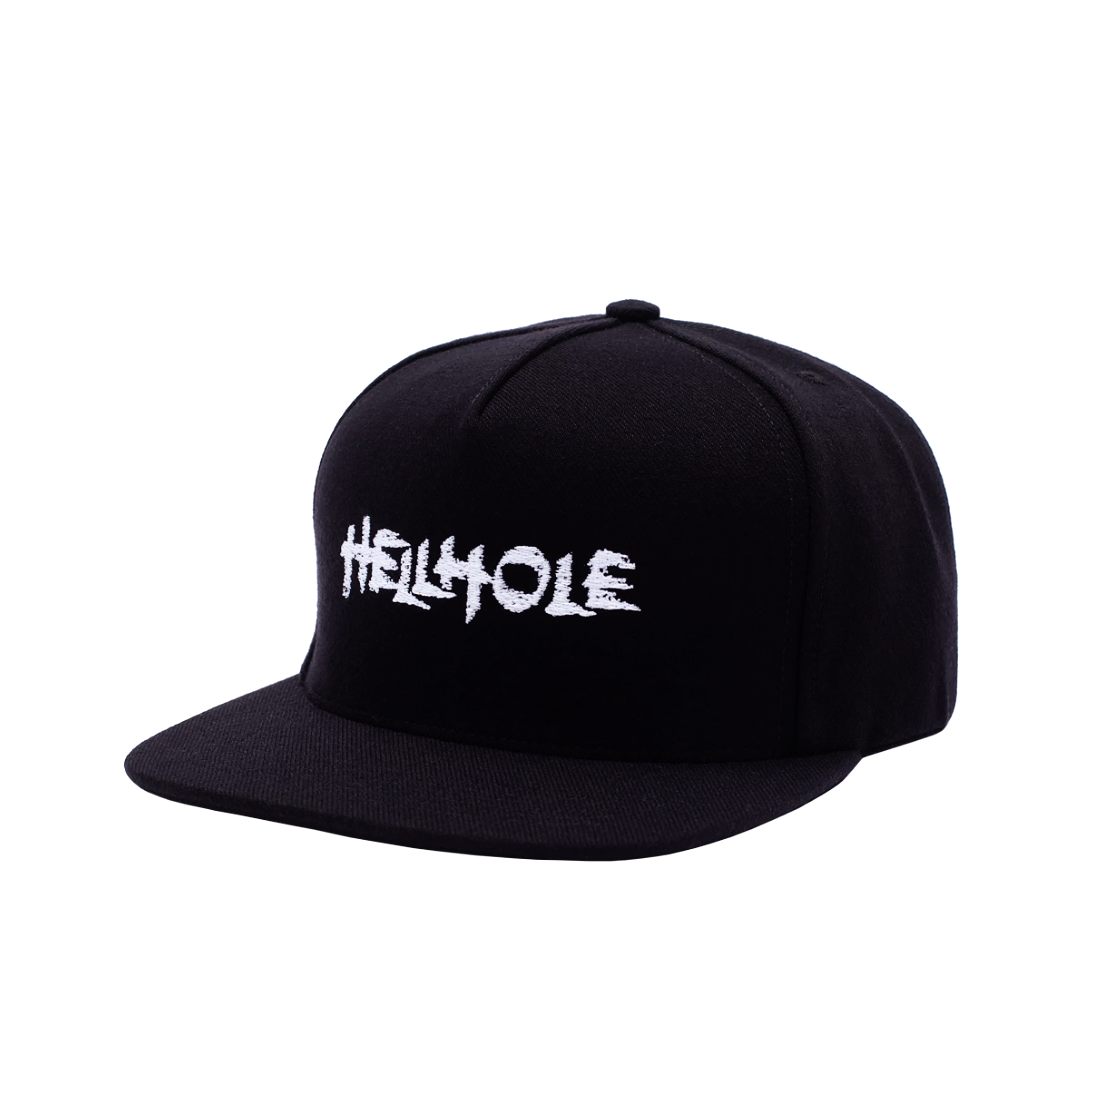 【Hockey】Hellhole 5Panel Cap - Black